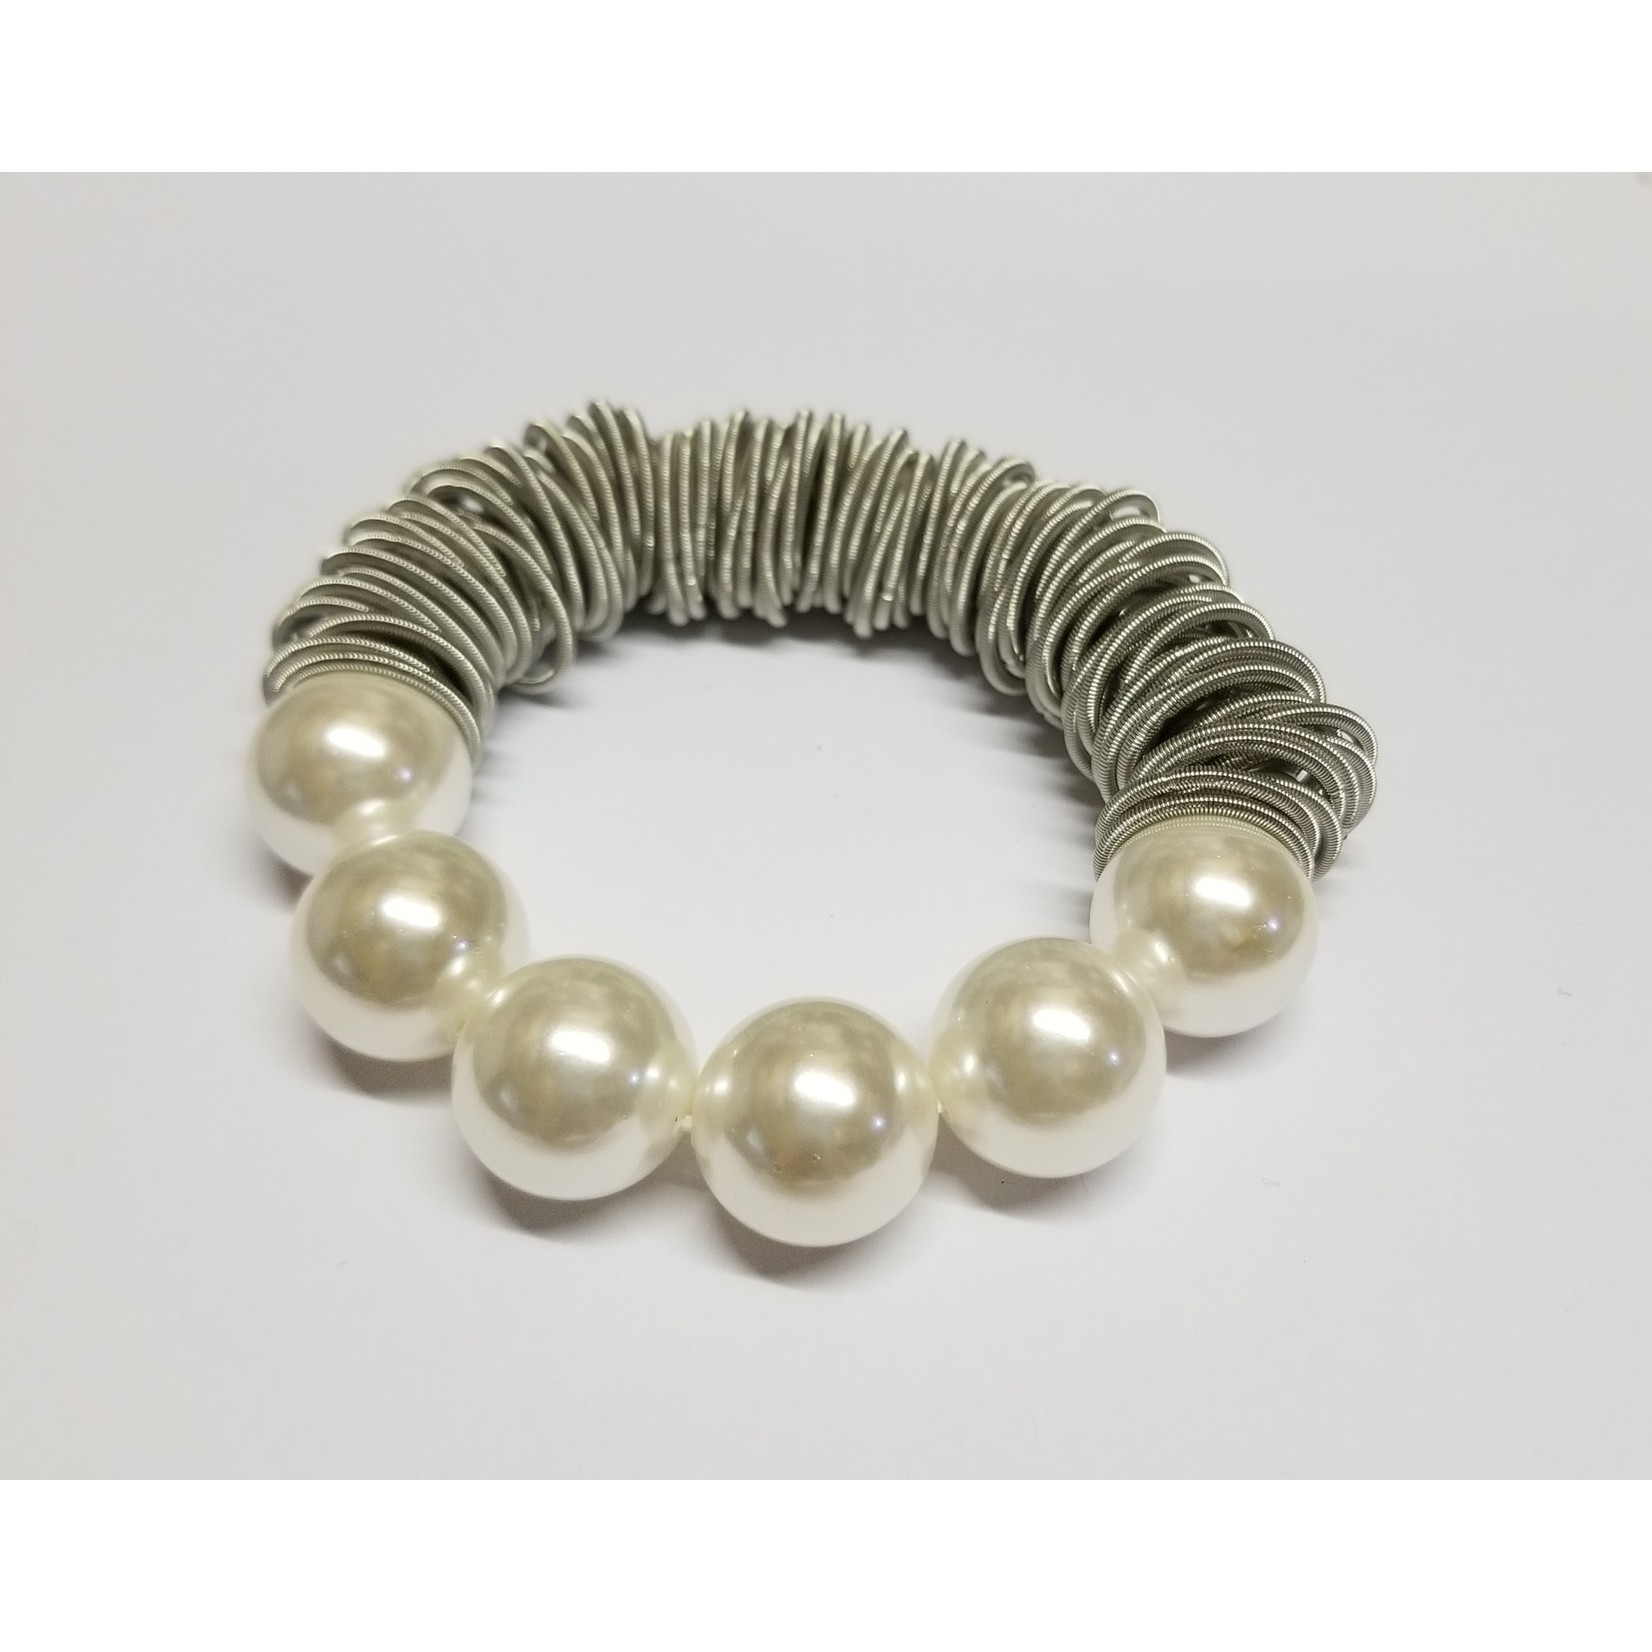 Sea Lily Silver Spring Ring Bracelet w/ Mother of Pearls